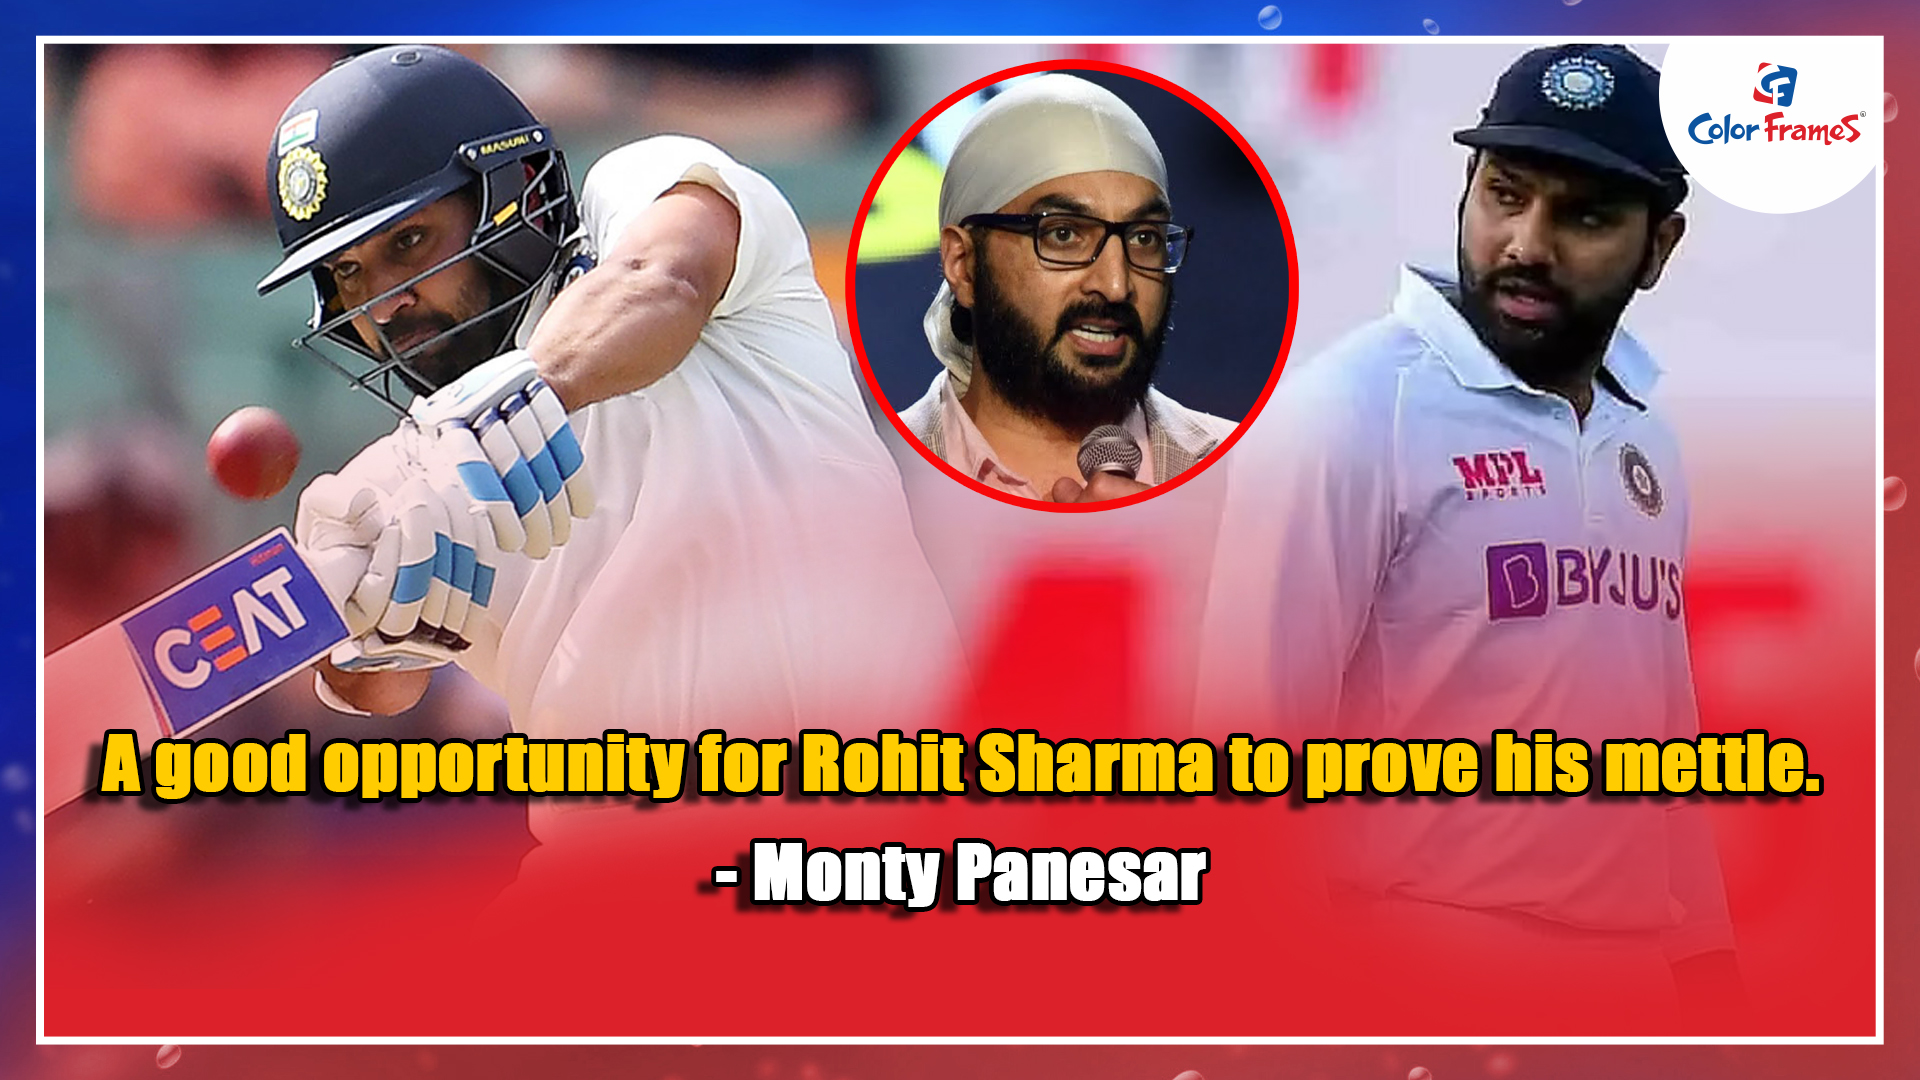 A good opportunity for Rohit Sharma to prove his mettle. - Monty Panesar